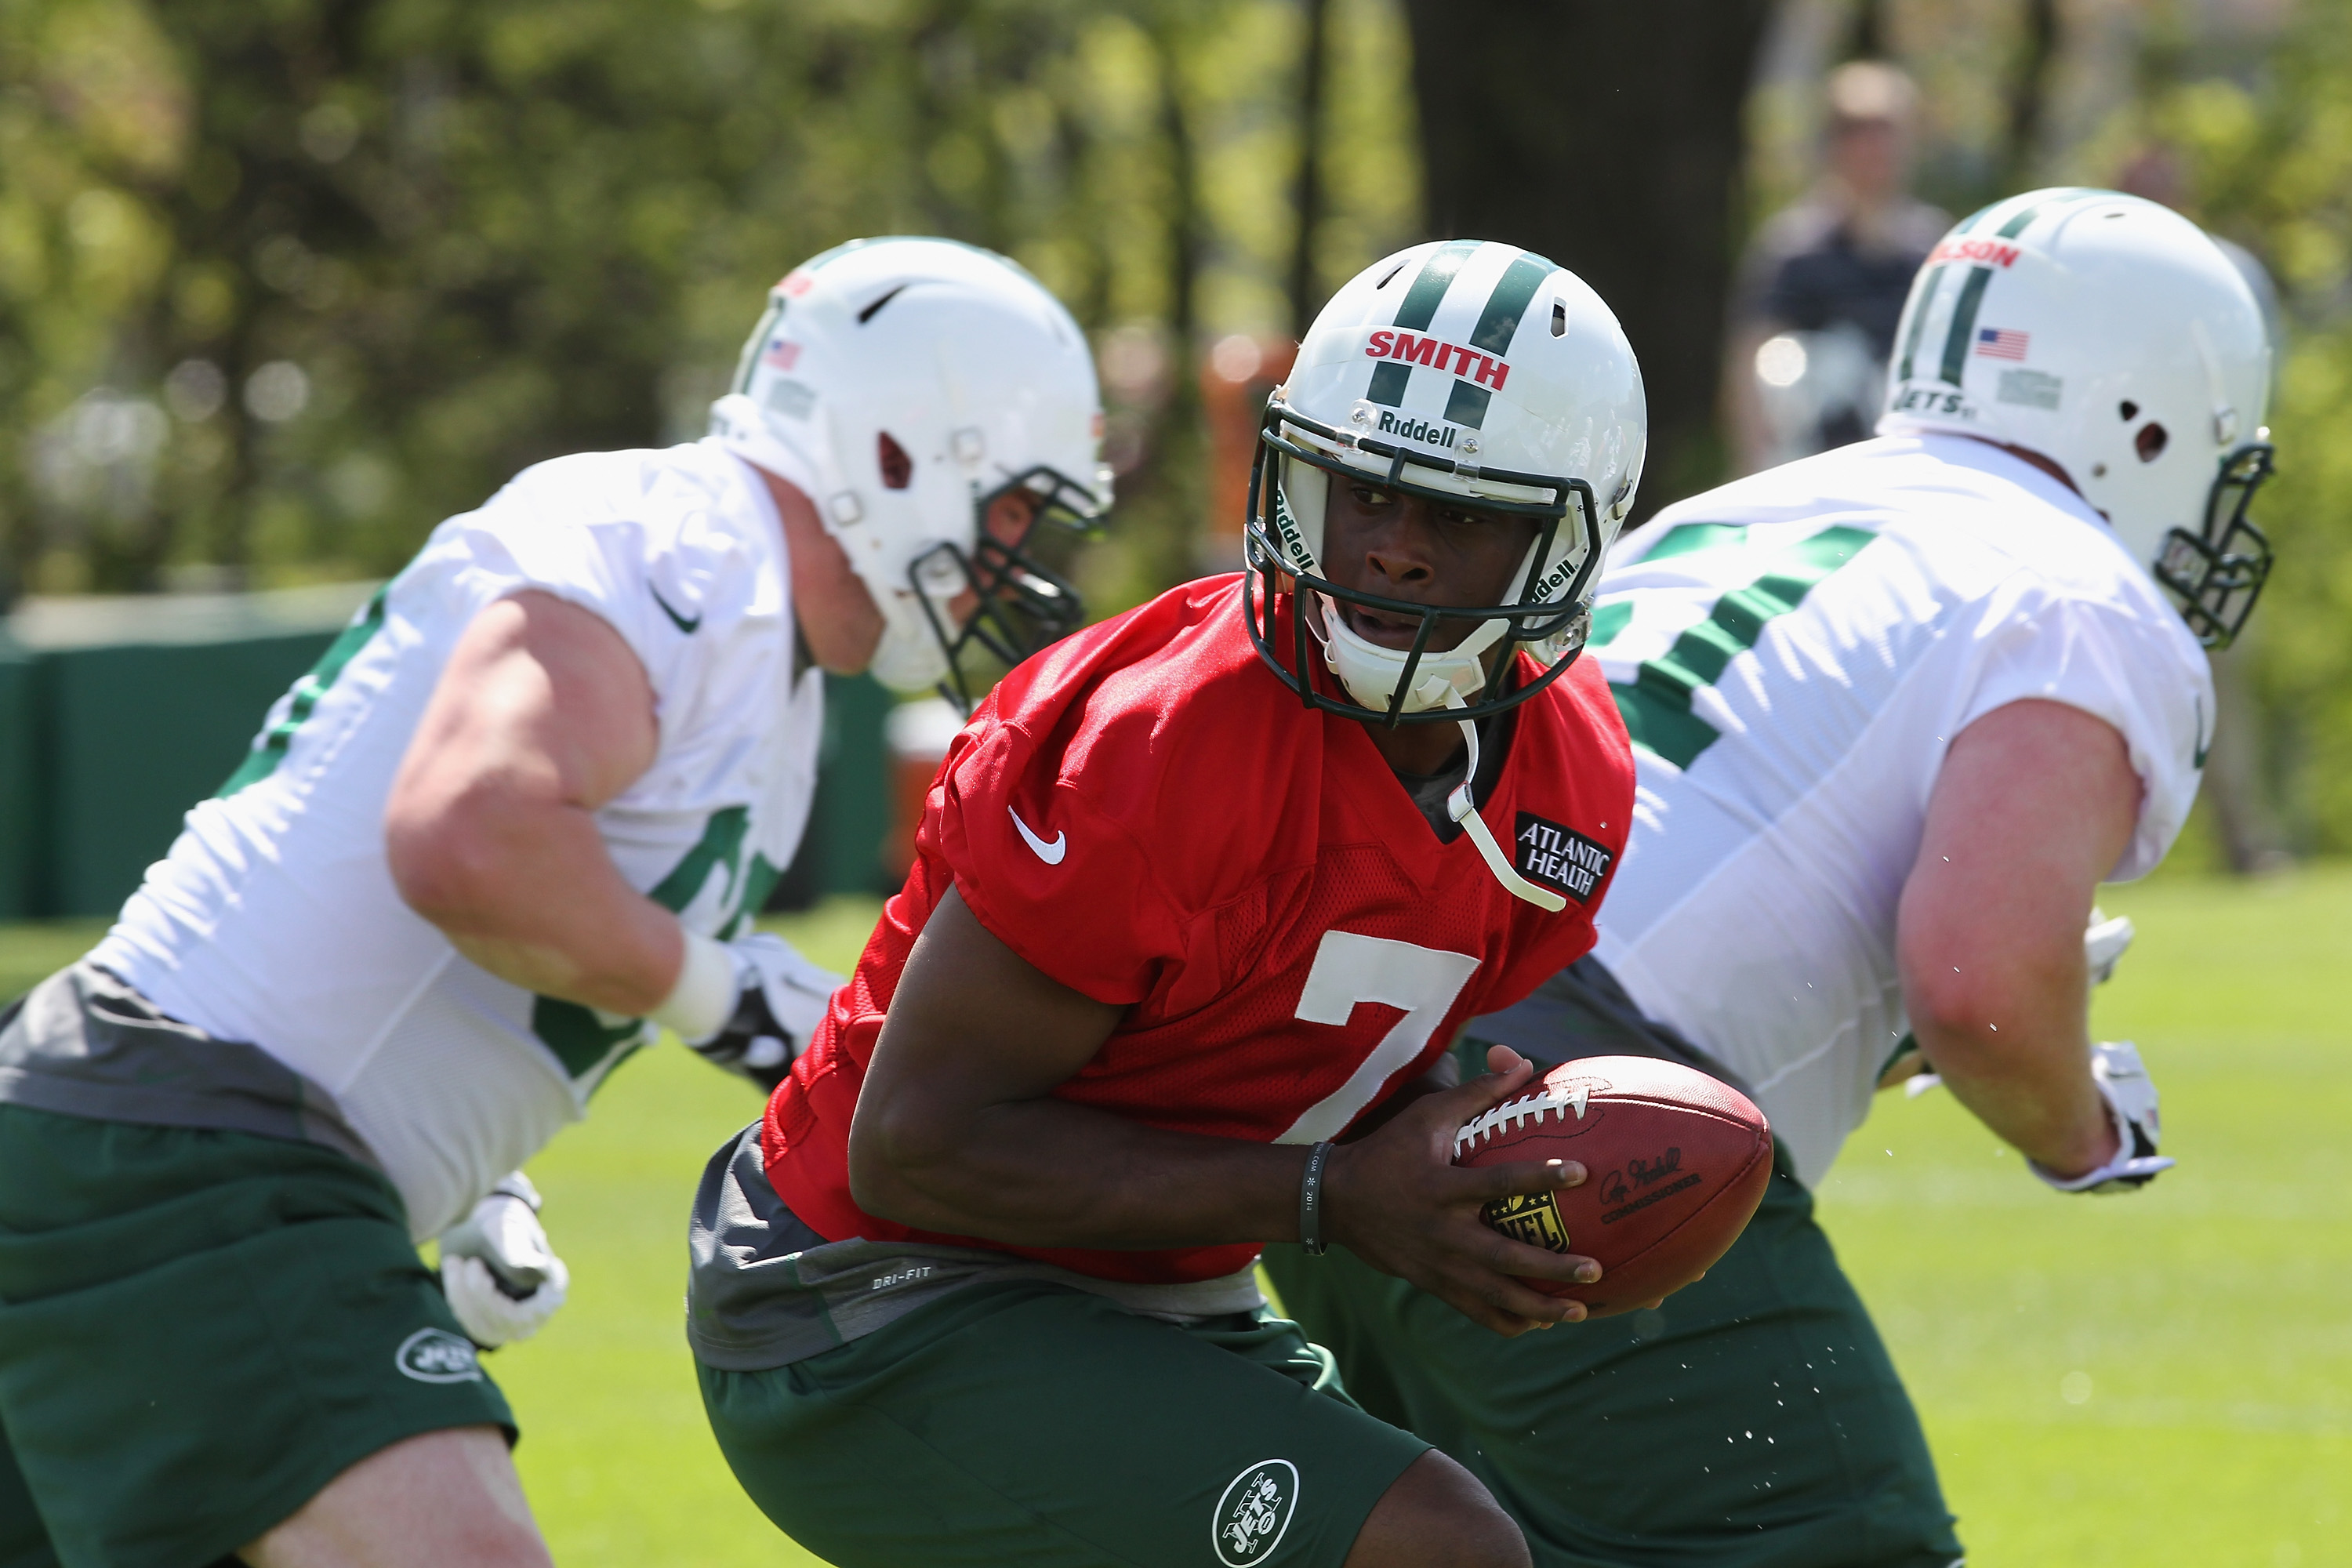 Two first-quarter picks for Geno Smith